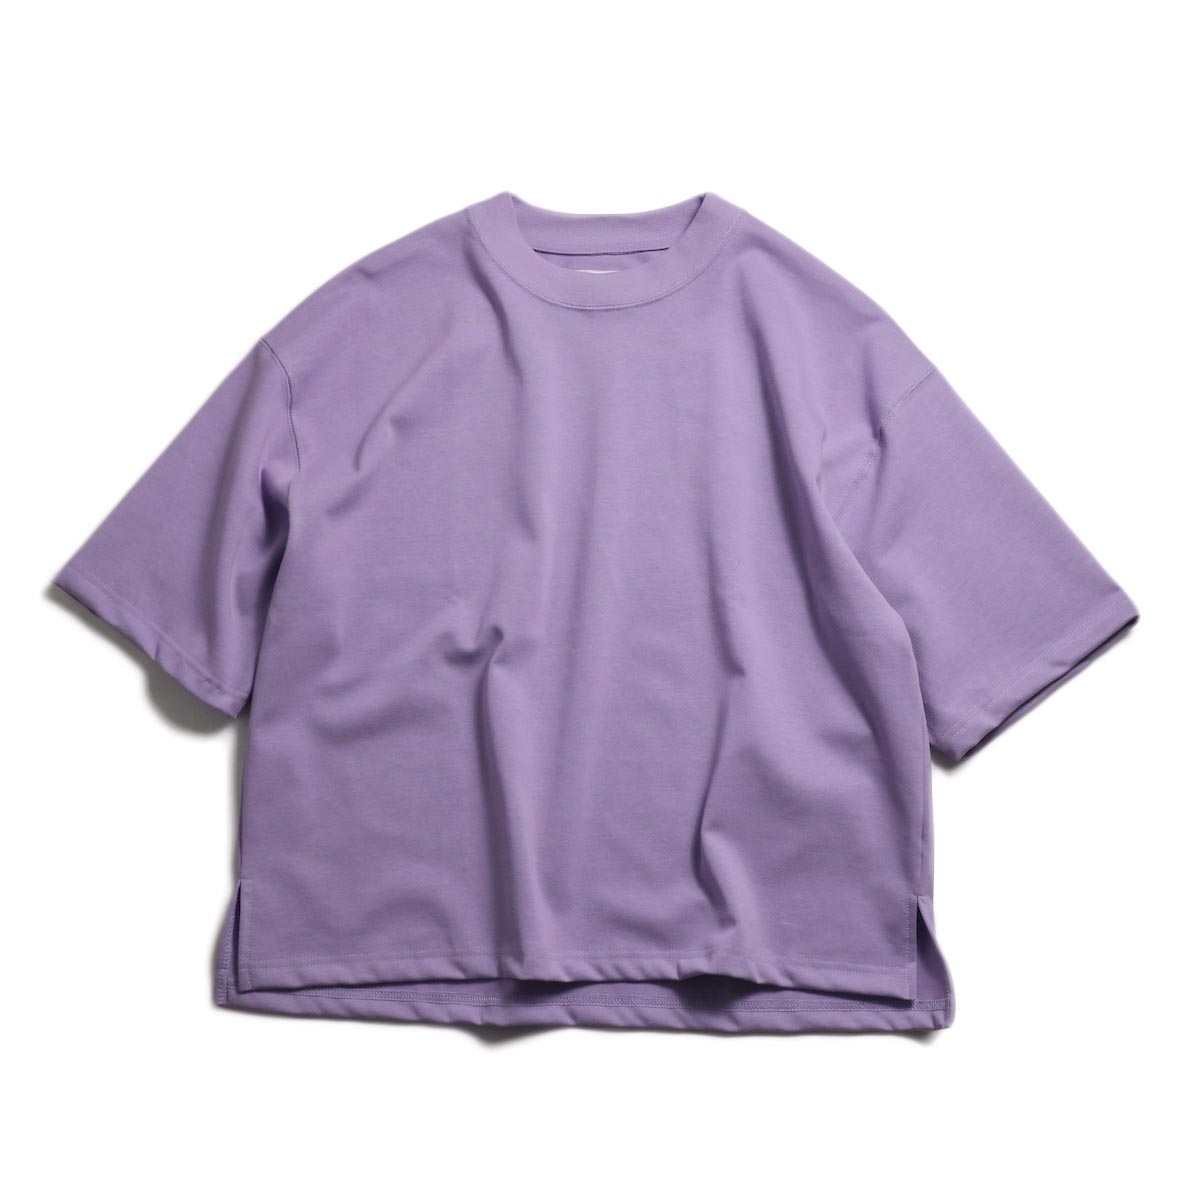 JANE SMITH / Big T Shirt -Purple